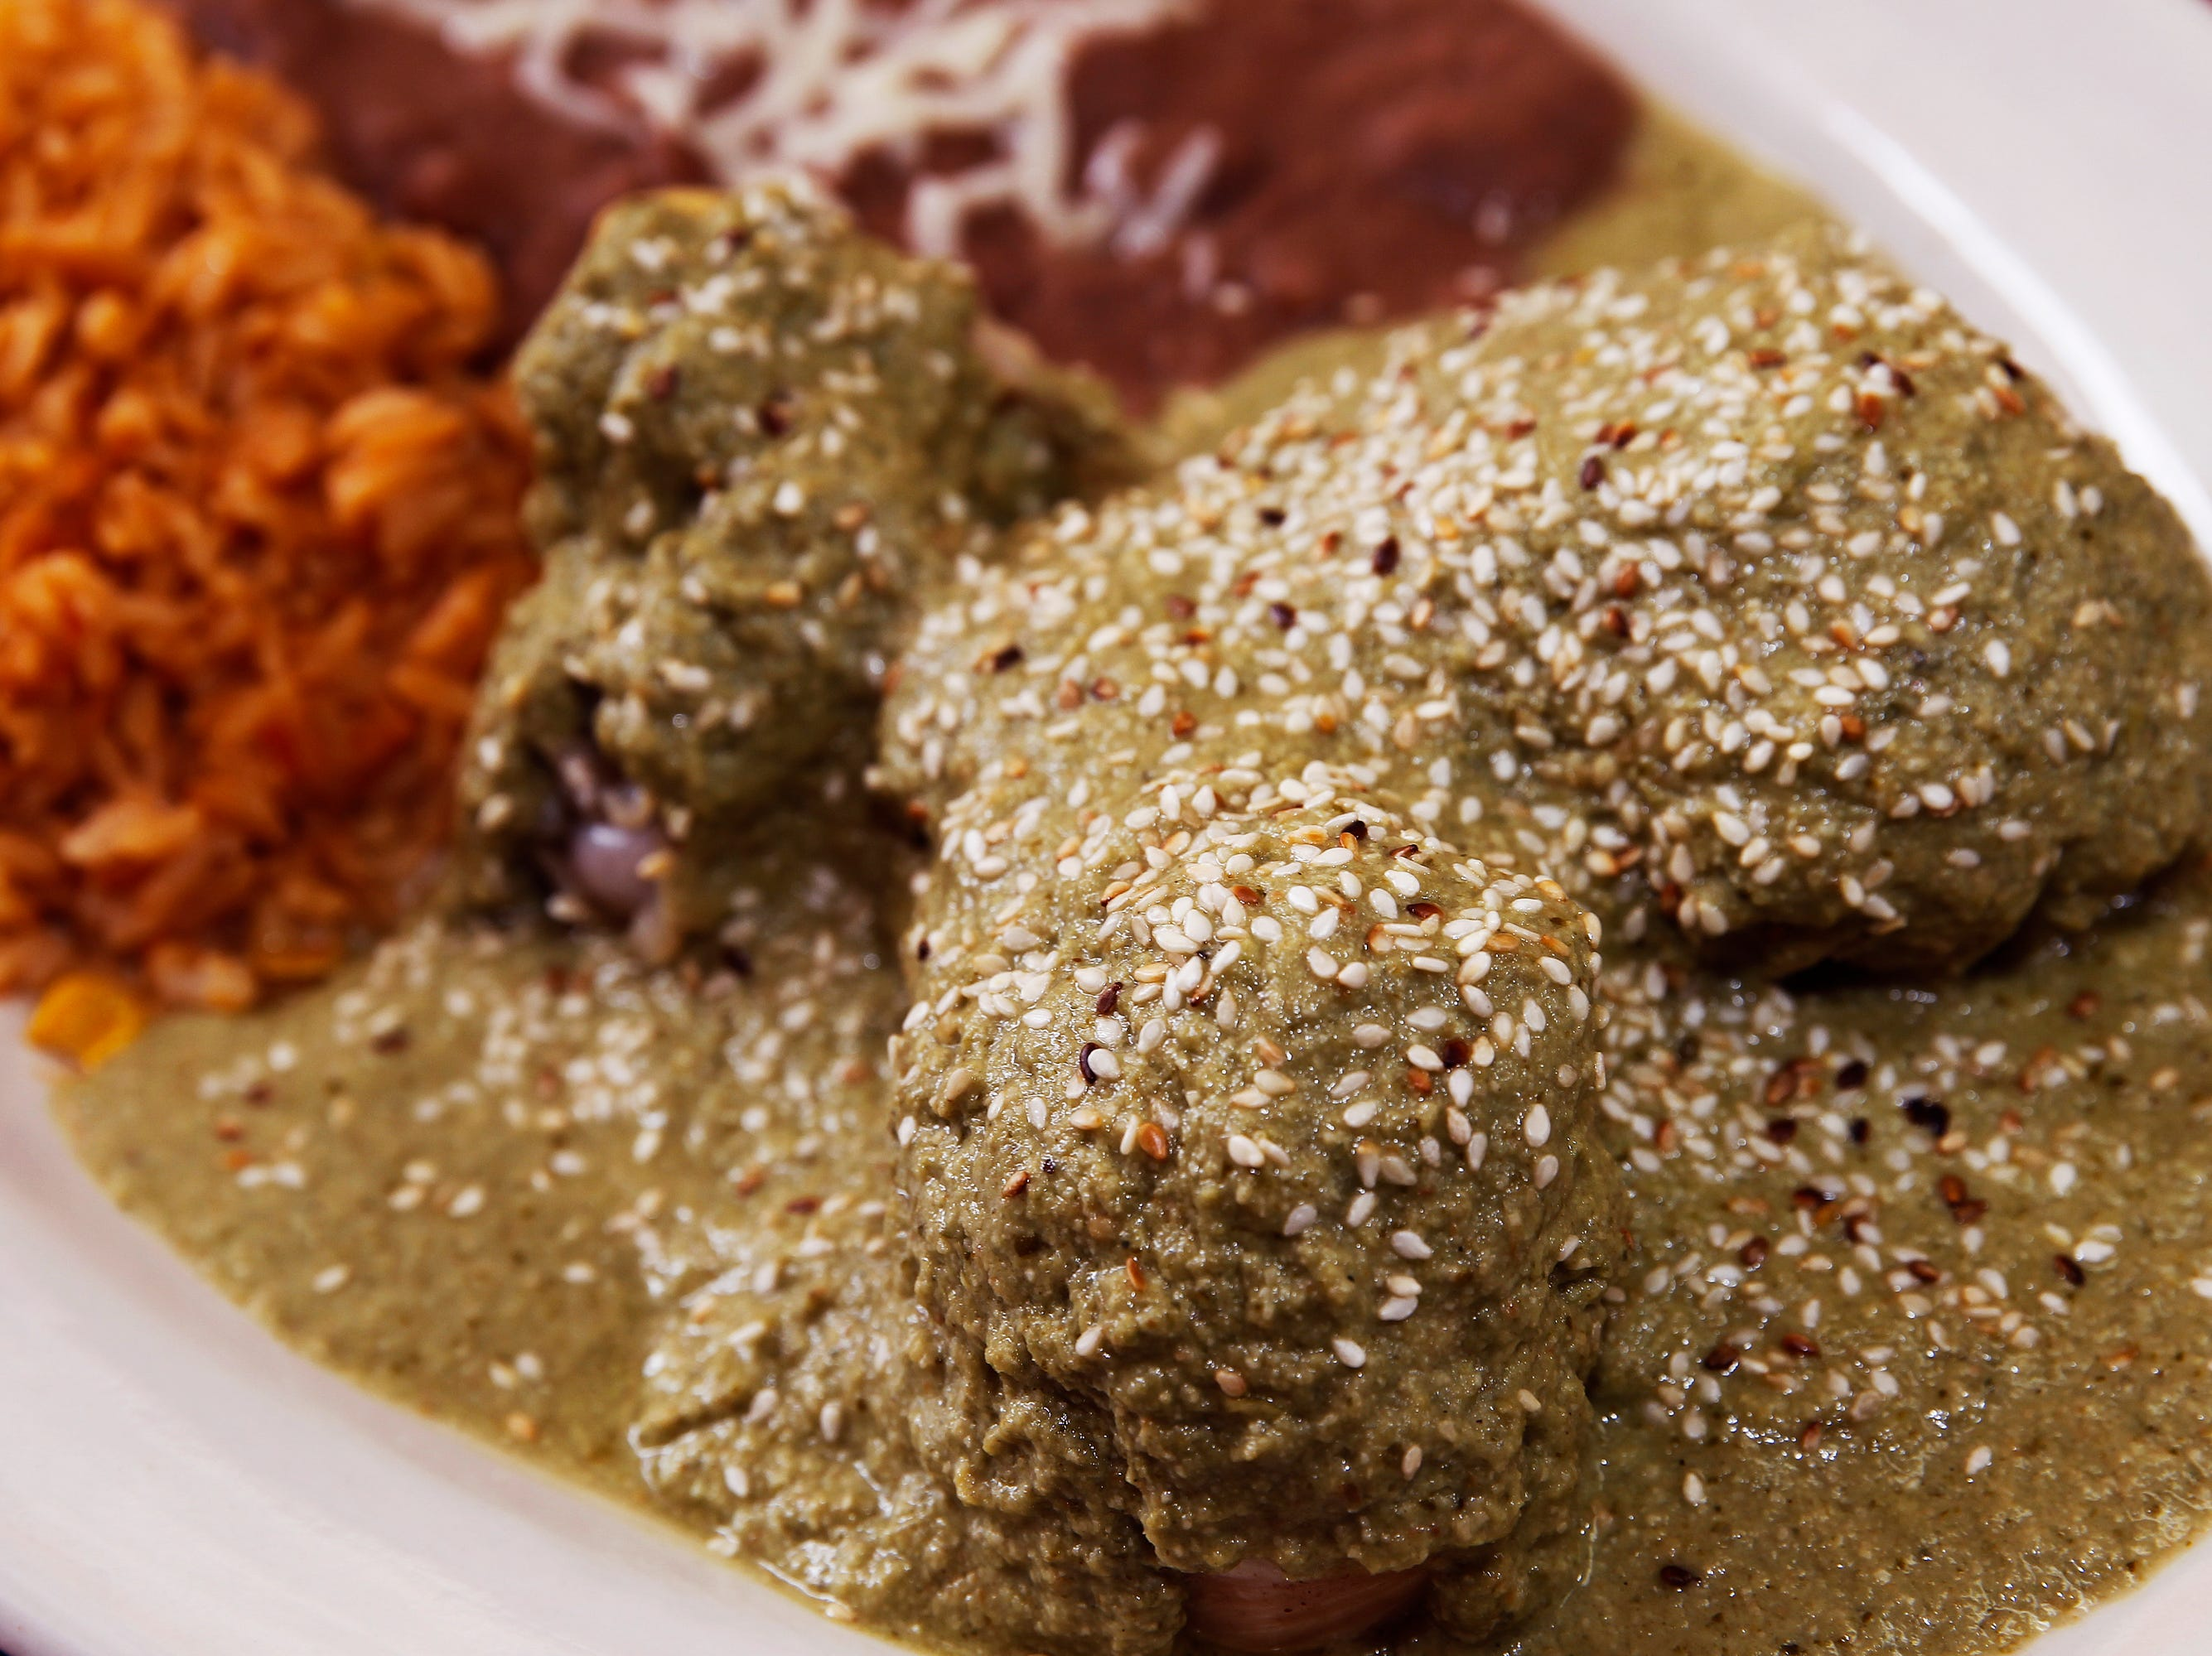 Pipian verde, sprinkled with sesame seeds, covers chicken drumstricks at El Tlaxcalteca. The pipian, made from ground pumpkin seeds, is one of several moles that the restaurant makes.